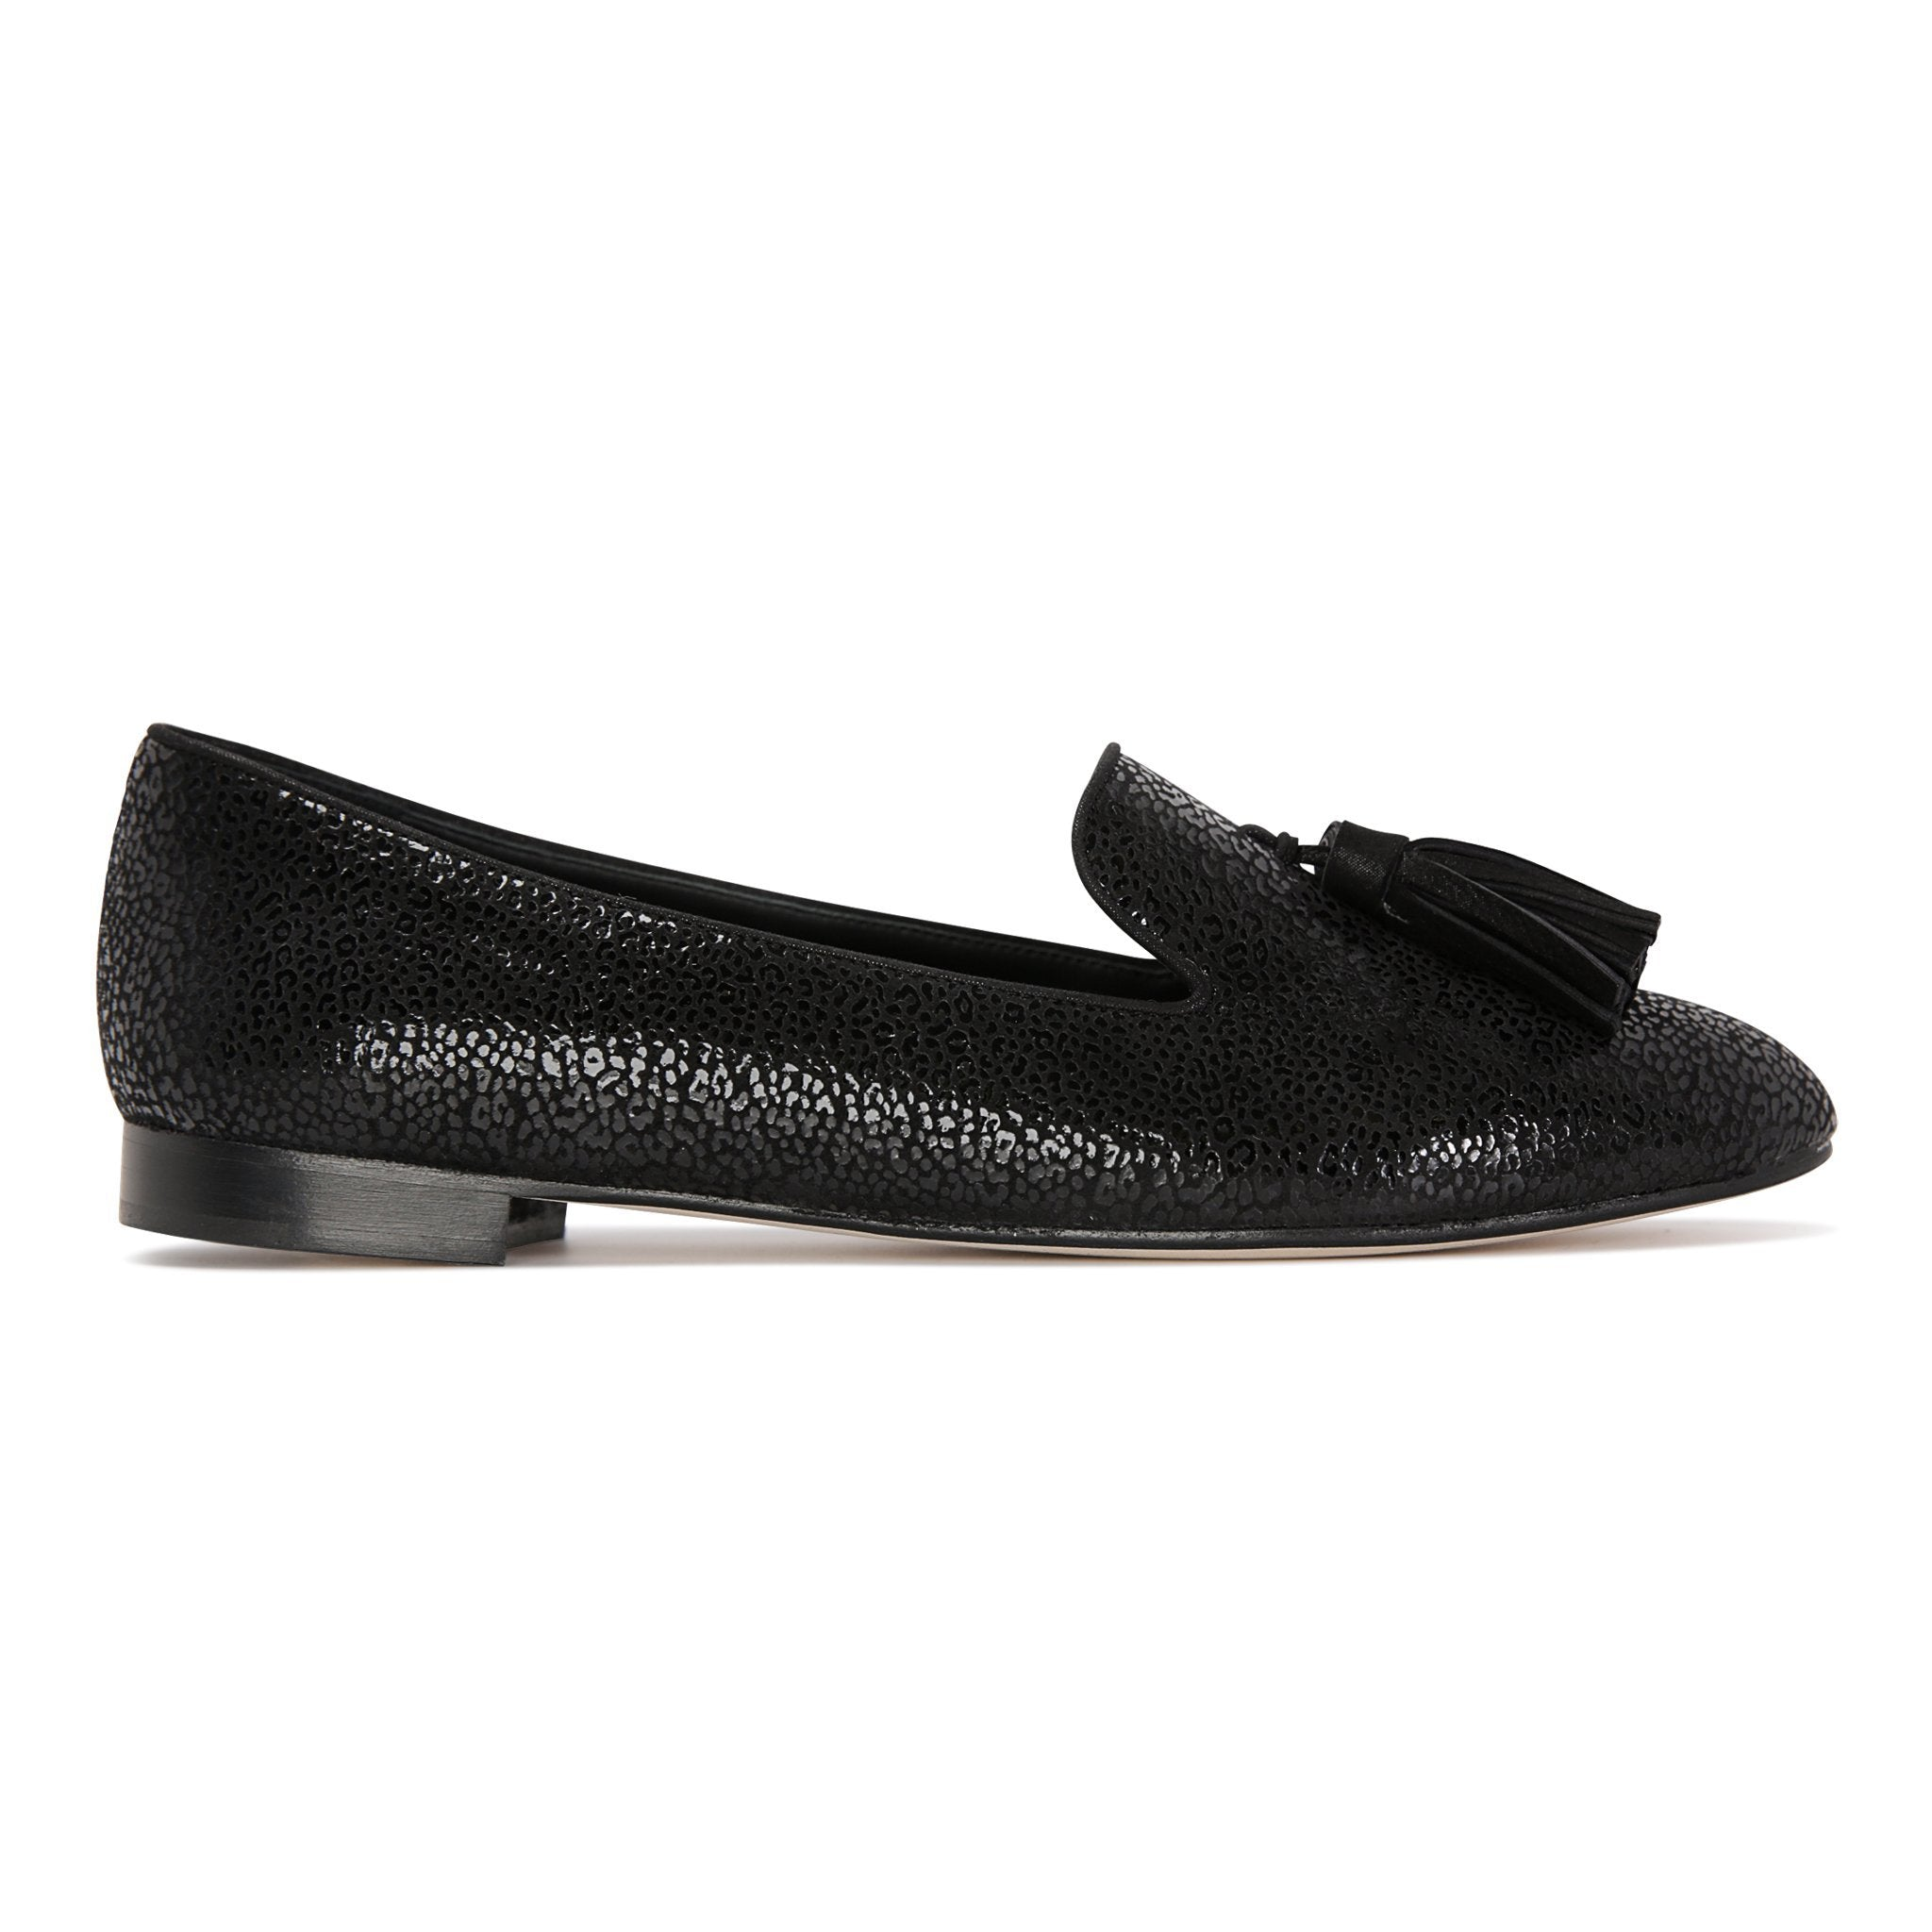 PARMA - Savannah Nero + Hydra, VIAJIYU - Women's Hand Made Sustainable Luxury Shoes. Made in Italy. Made to Order.